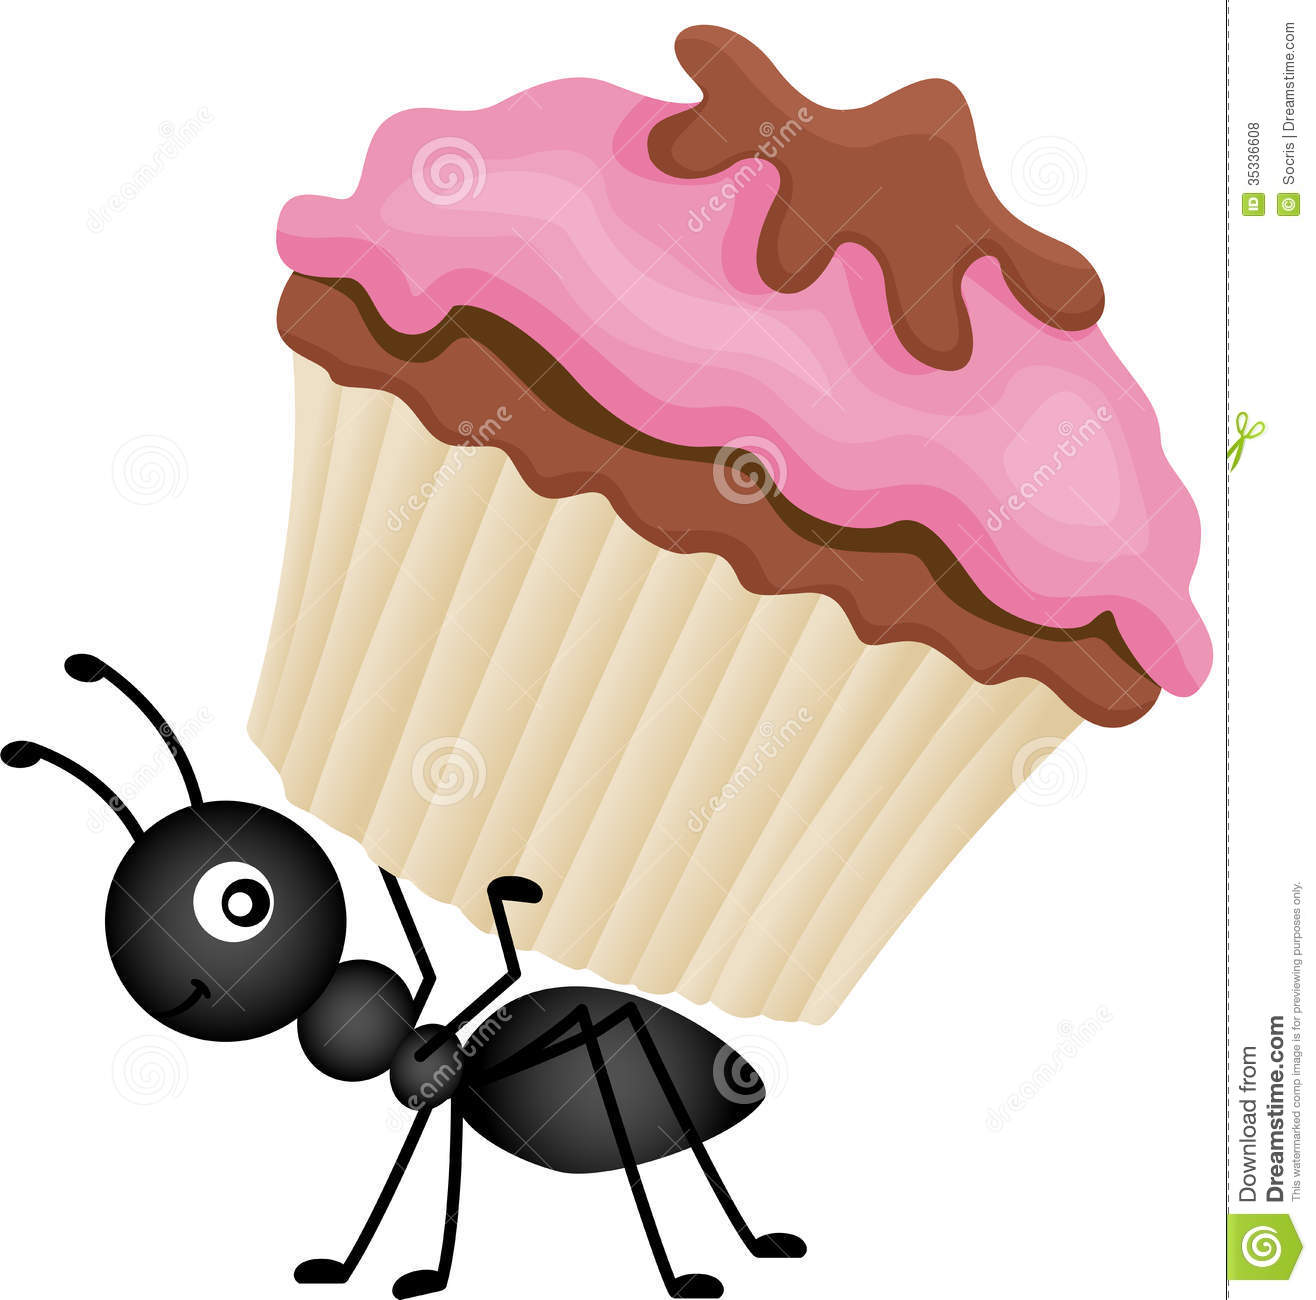 Ant picnic food clipart